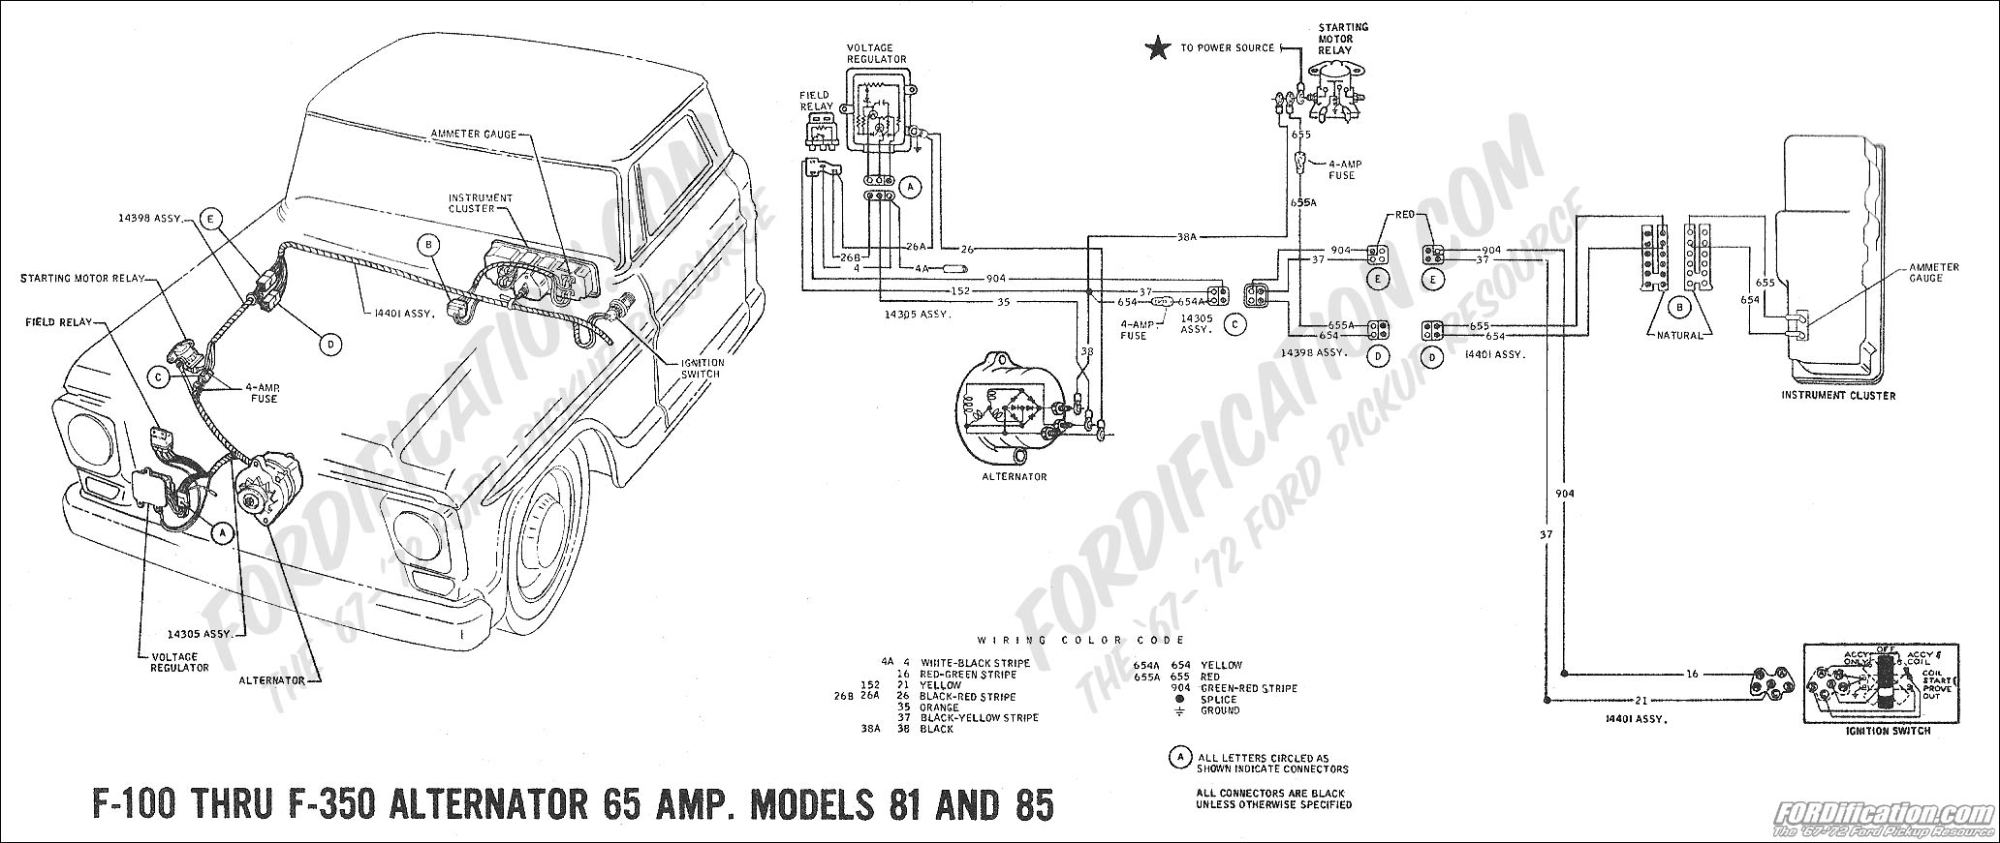 hight resolution of 1974 ford 302 engine diagram schema wiring diagrams ford mustang air conditioning system diagram 1974 ford mustang fuel system diagram